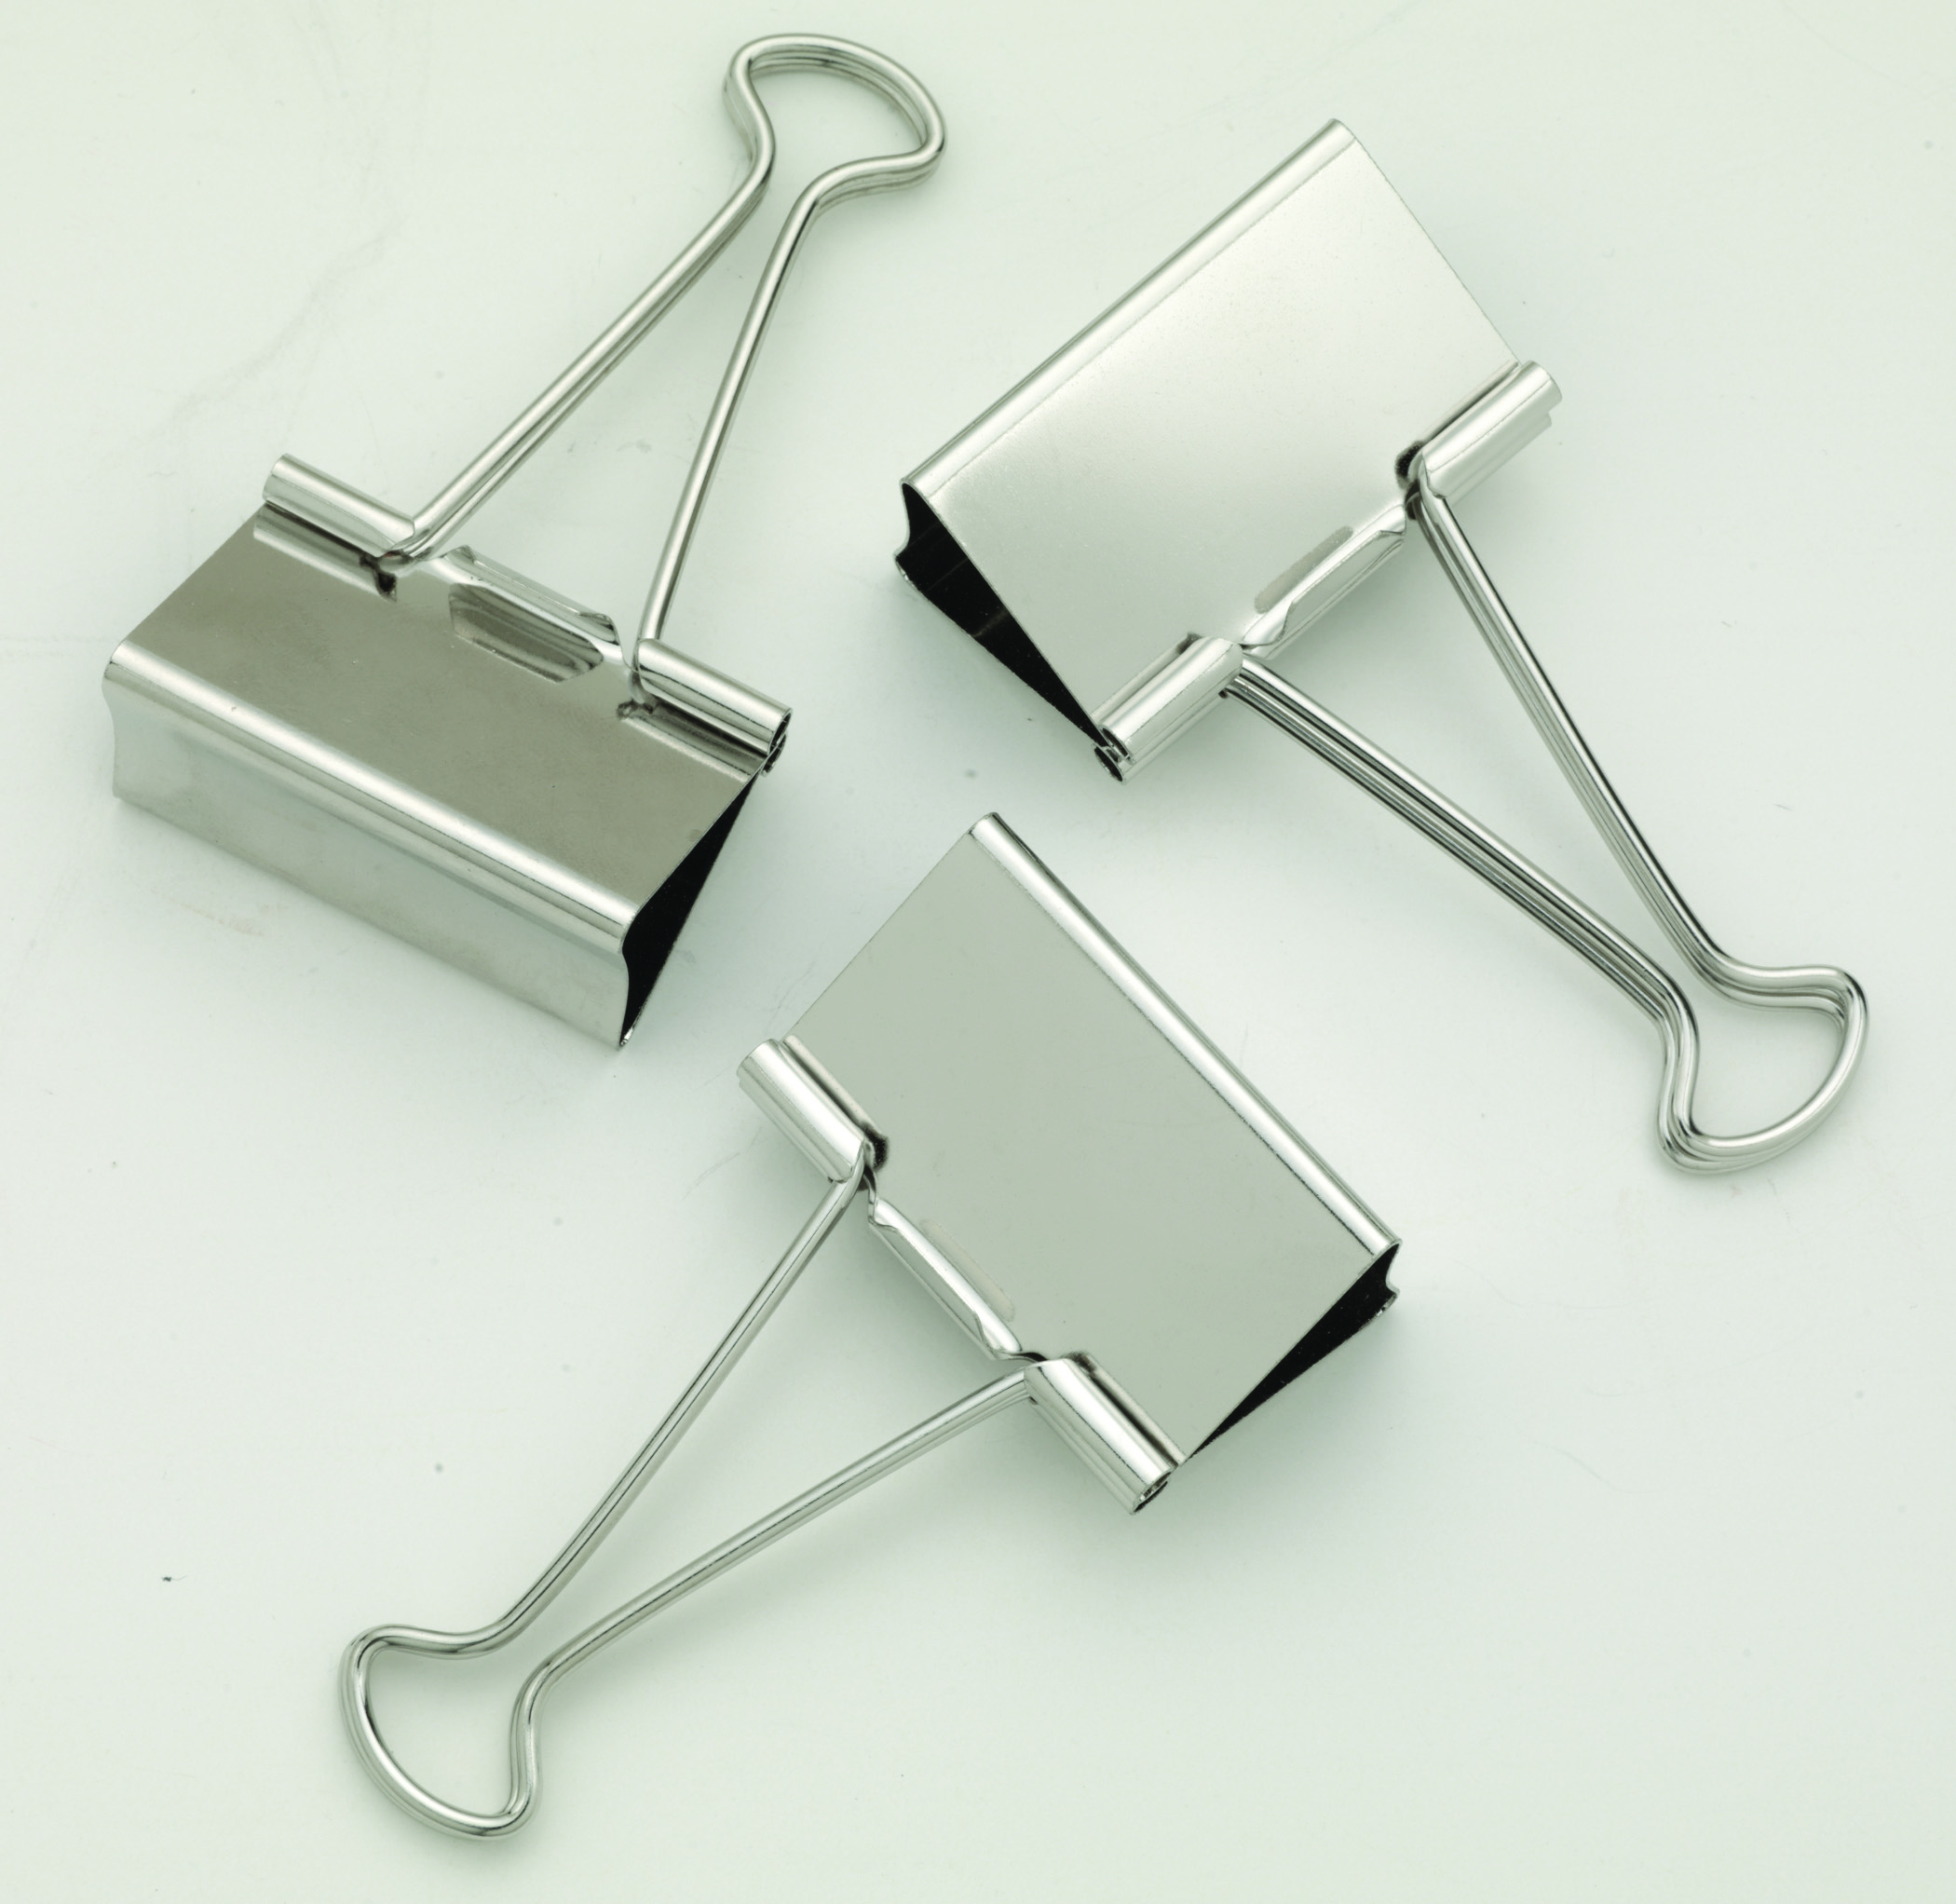 "Staples Large Satin Silver Metal Binder Clips, 2"" Size"